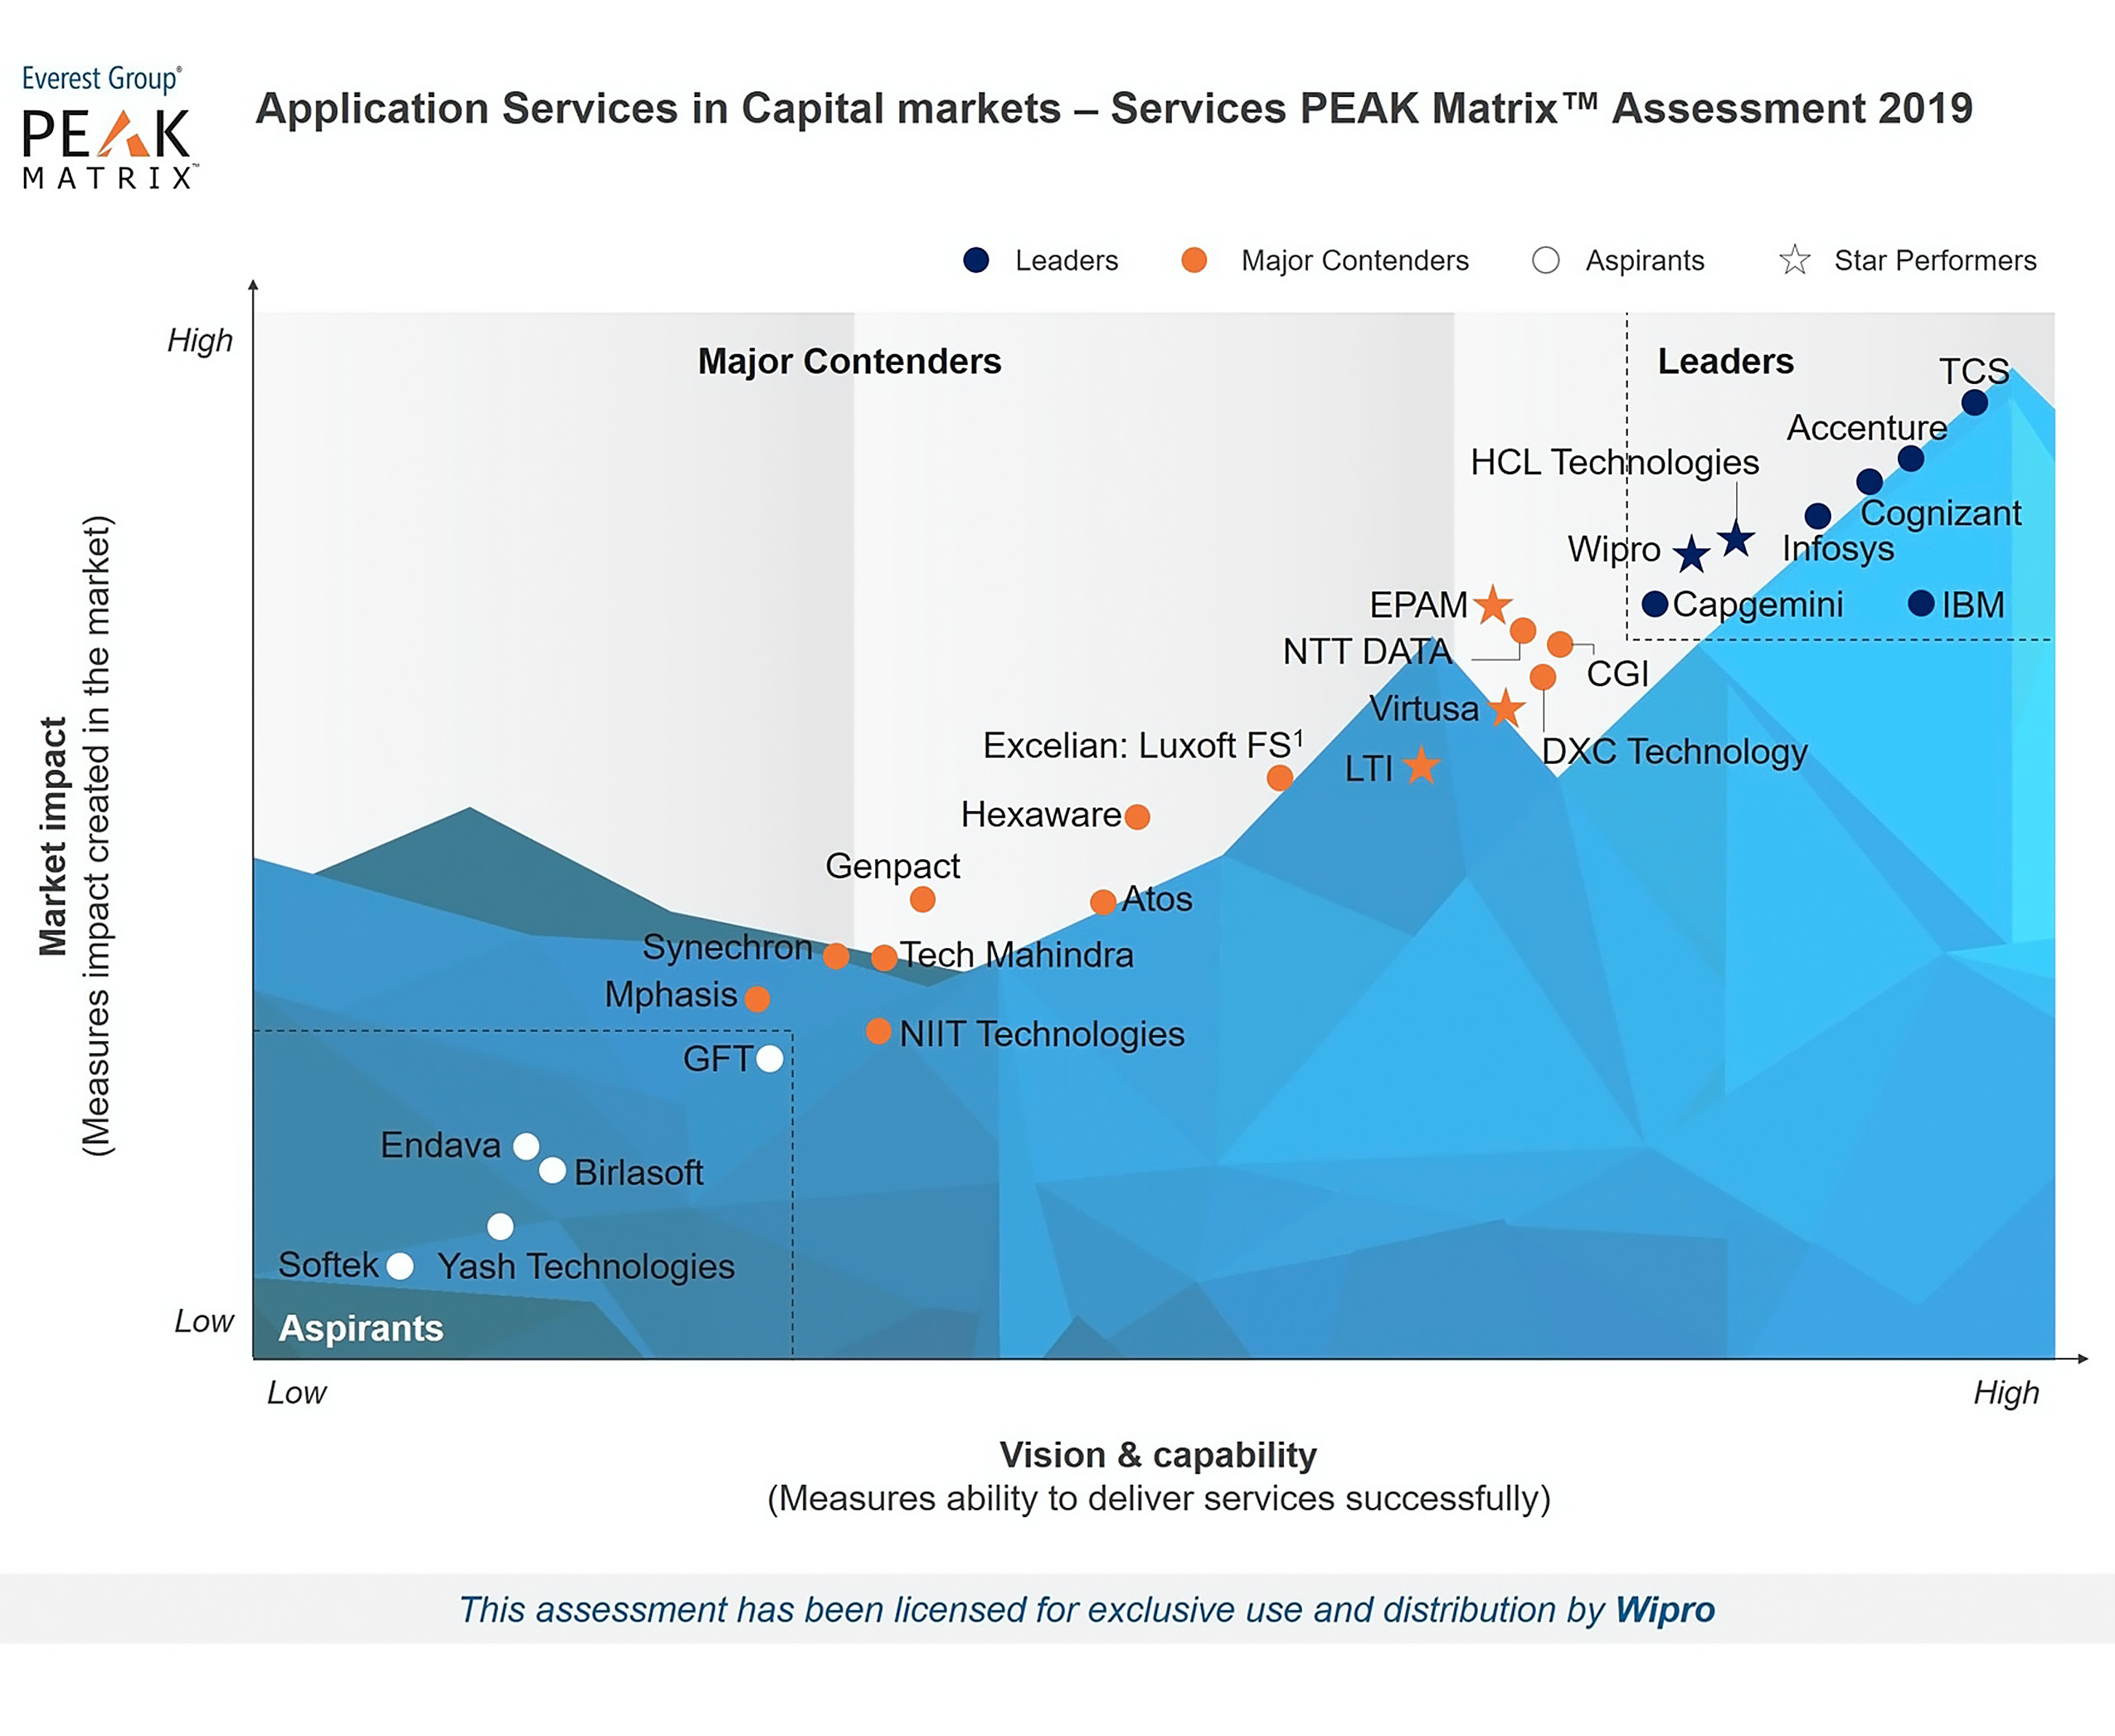 Wipro recognized as a Leader in Everest Group's Application Services in Capital Markets – Services PEAK Matrix™ Assessment 2019